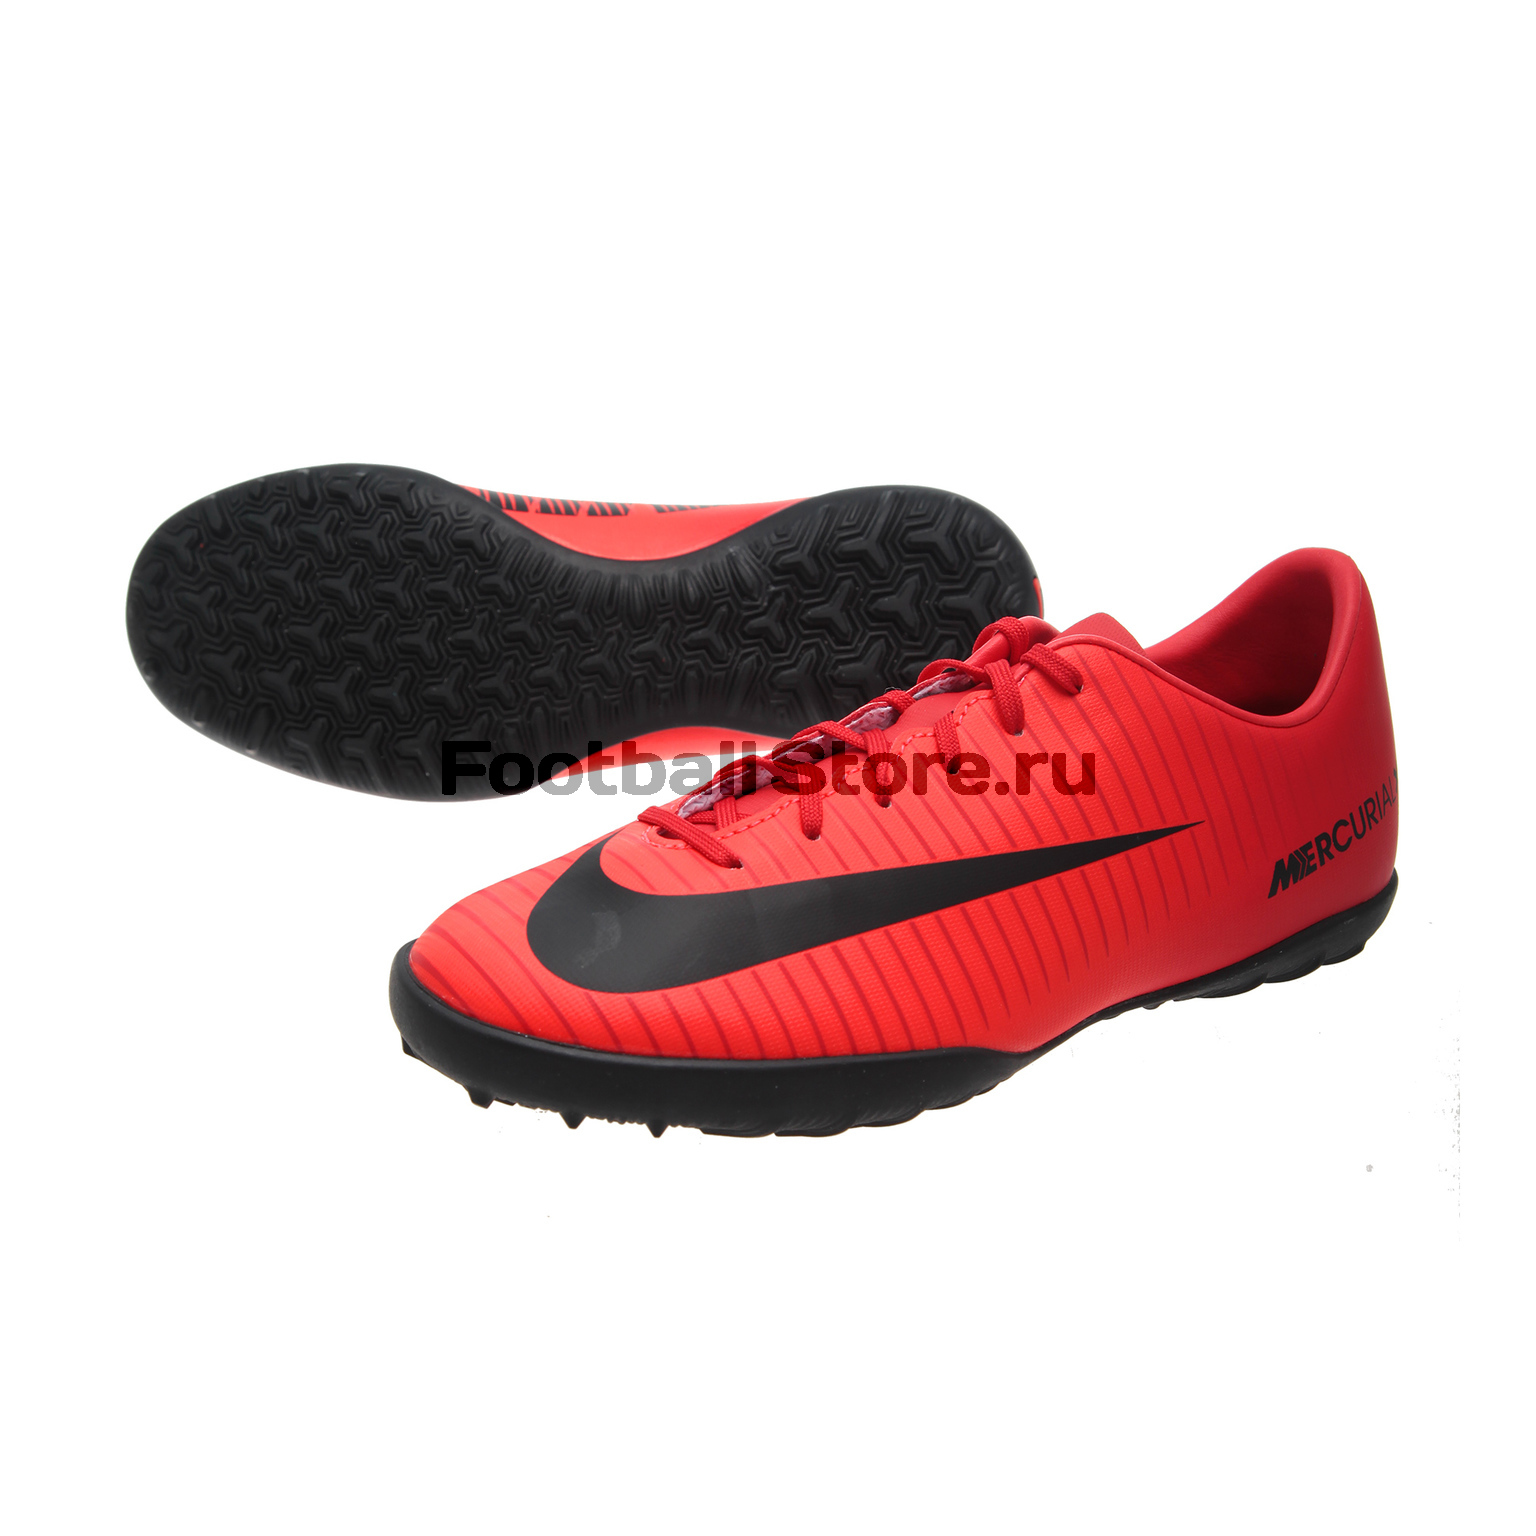 Детские бутсы Nike Шиповки Nike JR Mercurial X Vapor TF 831949-616 спортинвентарь nike чехол для iphone 6 на руку nike vapor flash arm band 2 0 n rn 50 078 os